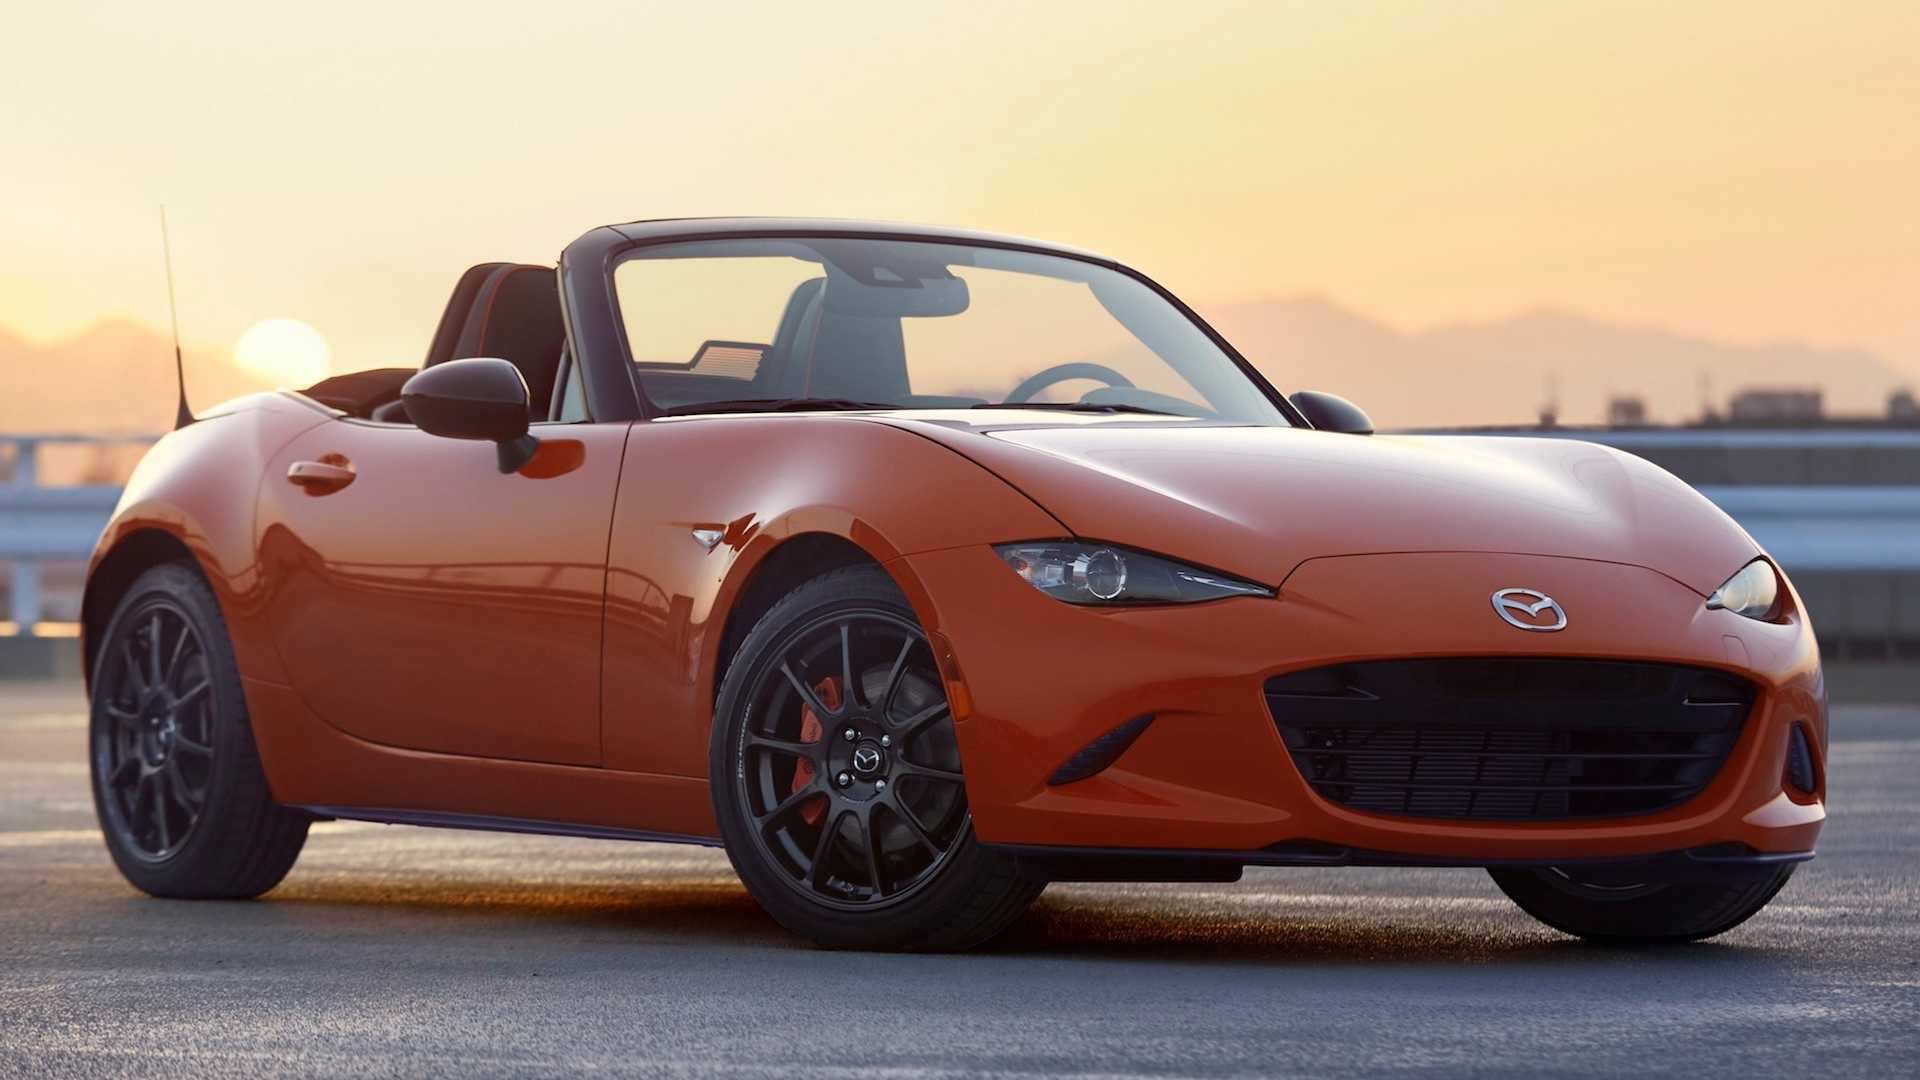 Mazda MX-5 Miata News and Reviews